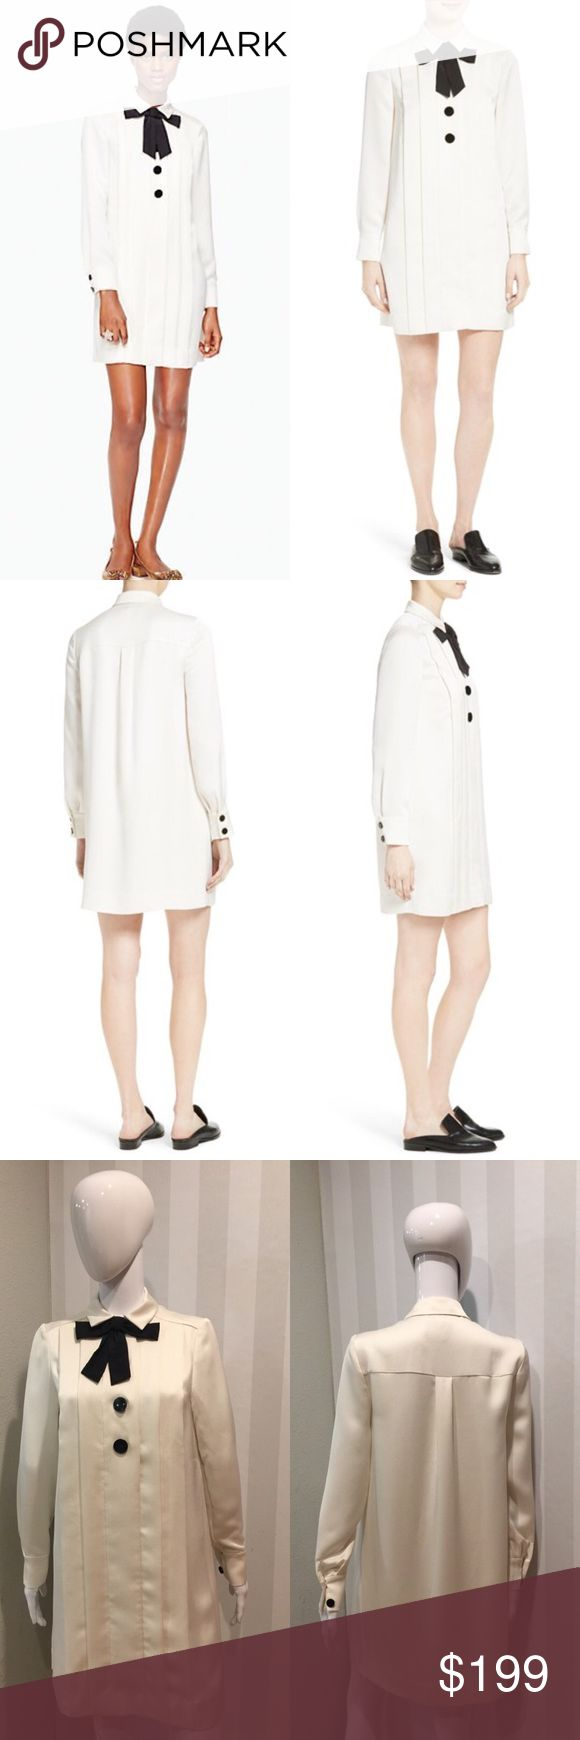 """Kate Spade satin crepe bow neck shirt dress chic Condition: brand new without tags, never worn.2017 spring collection. Front button closure. Point collar Long sleeves with two-button cuffs Back yoke with box pleat Straight hem 100% polyester color: French cream. Measurements: size 2: bust:37""""; ; hips:39.3""""; shoulder:14.8""""; sleeve:23.6""""; overall length:34.6"""" size 4: bust:38.6"""";  hips:40.9:; shoulder:15.2""""; sleeve:24""""; overall length:35"""" kate spade Dresses Mini"""